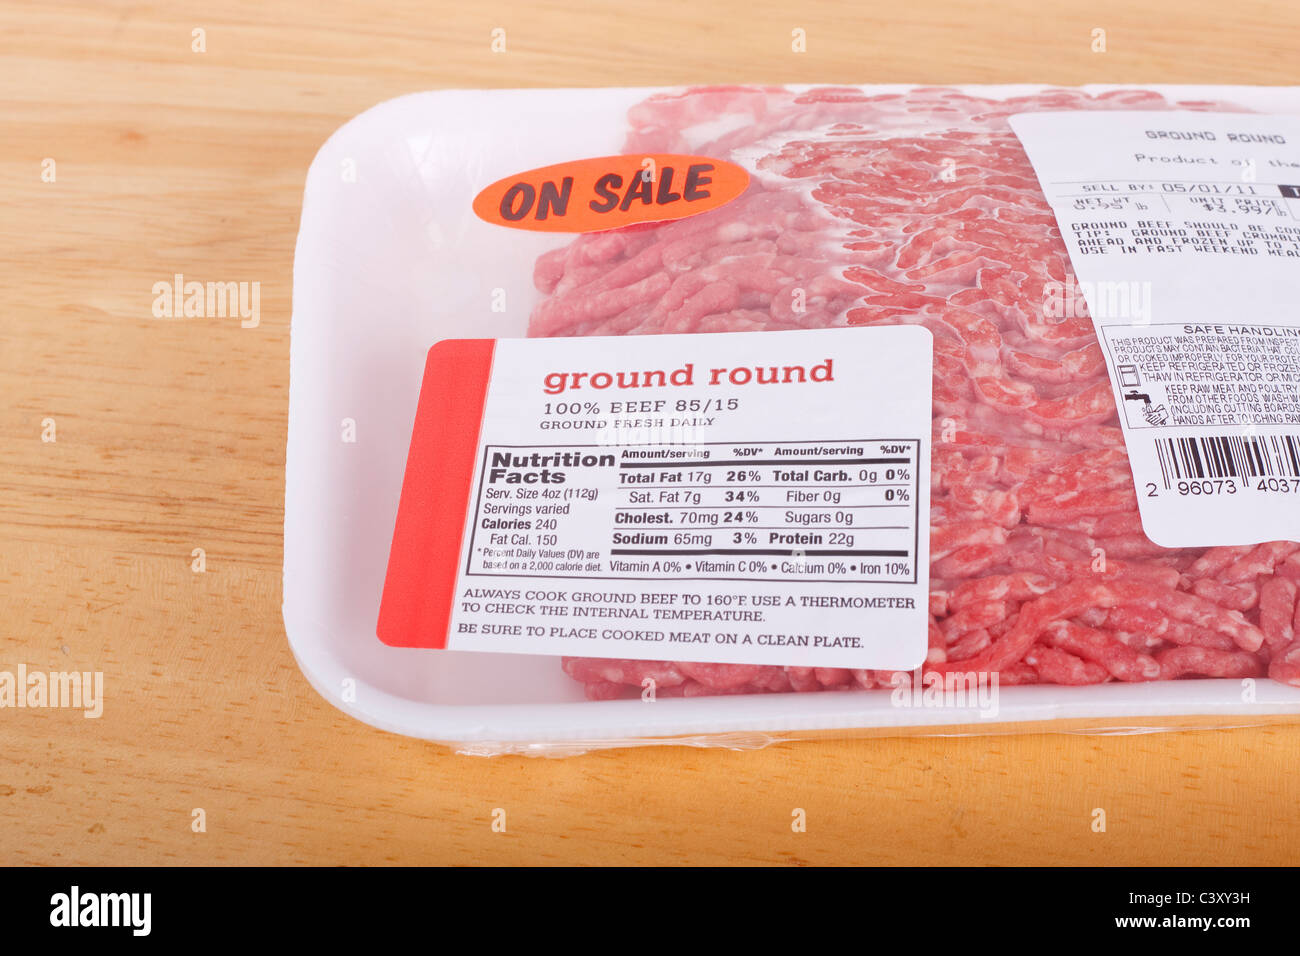 A package of fresh ground round with nutritional label - Stock Image